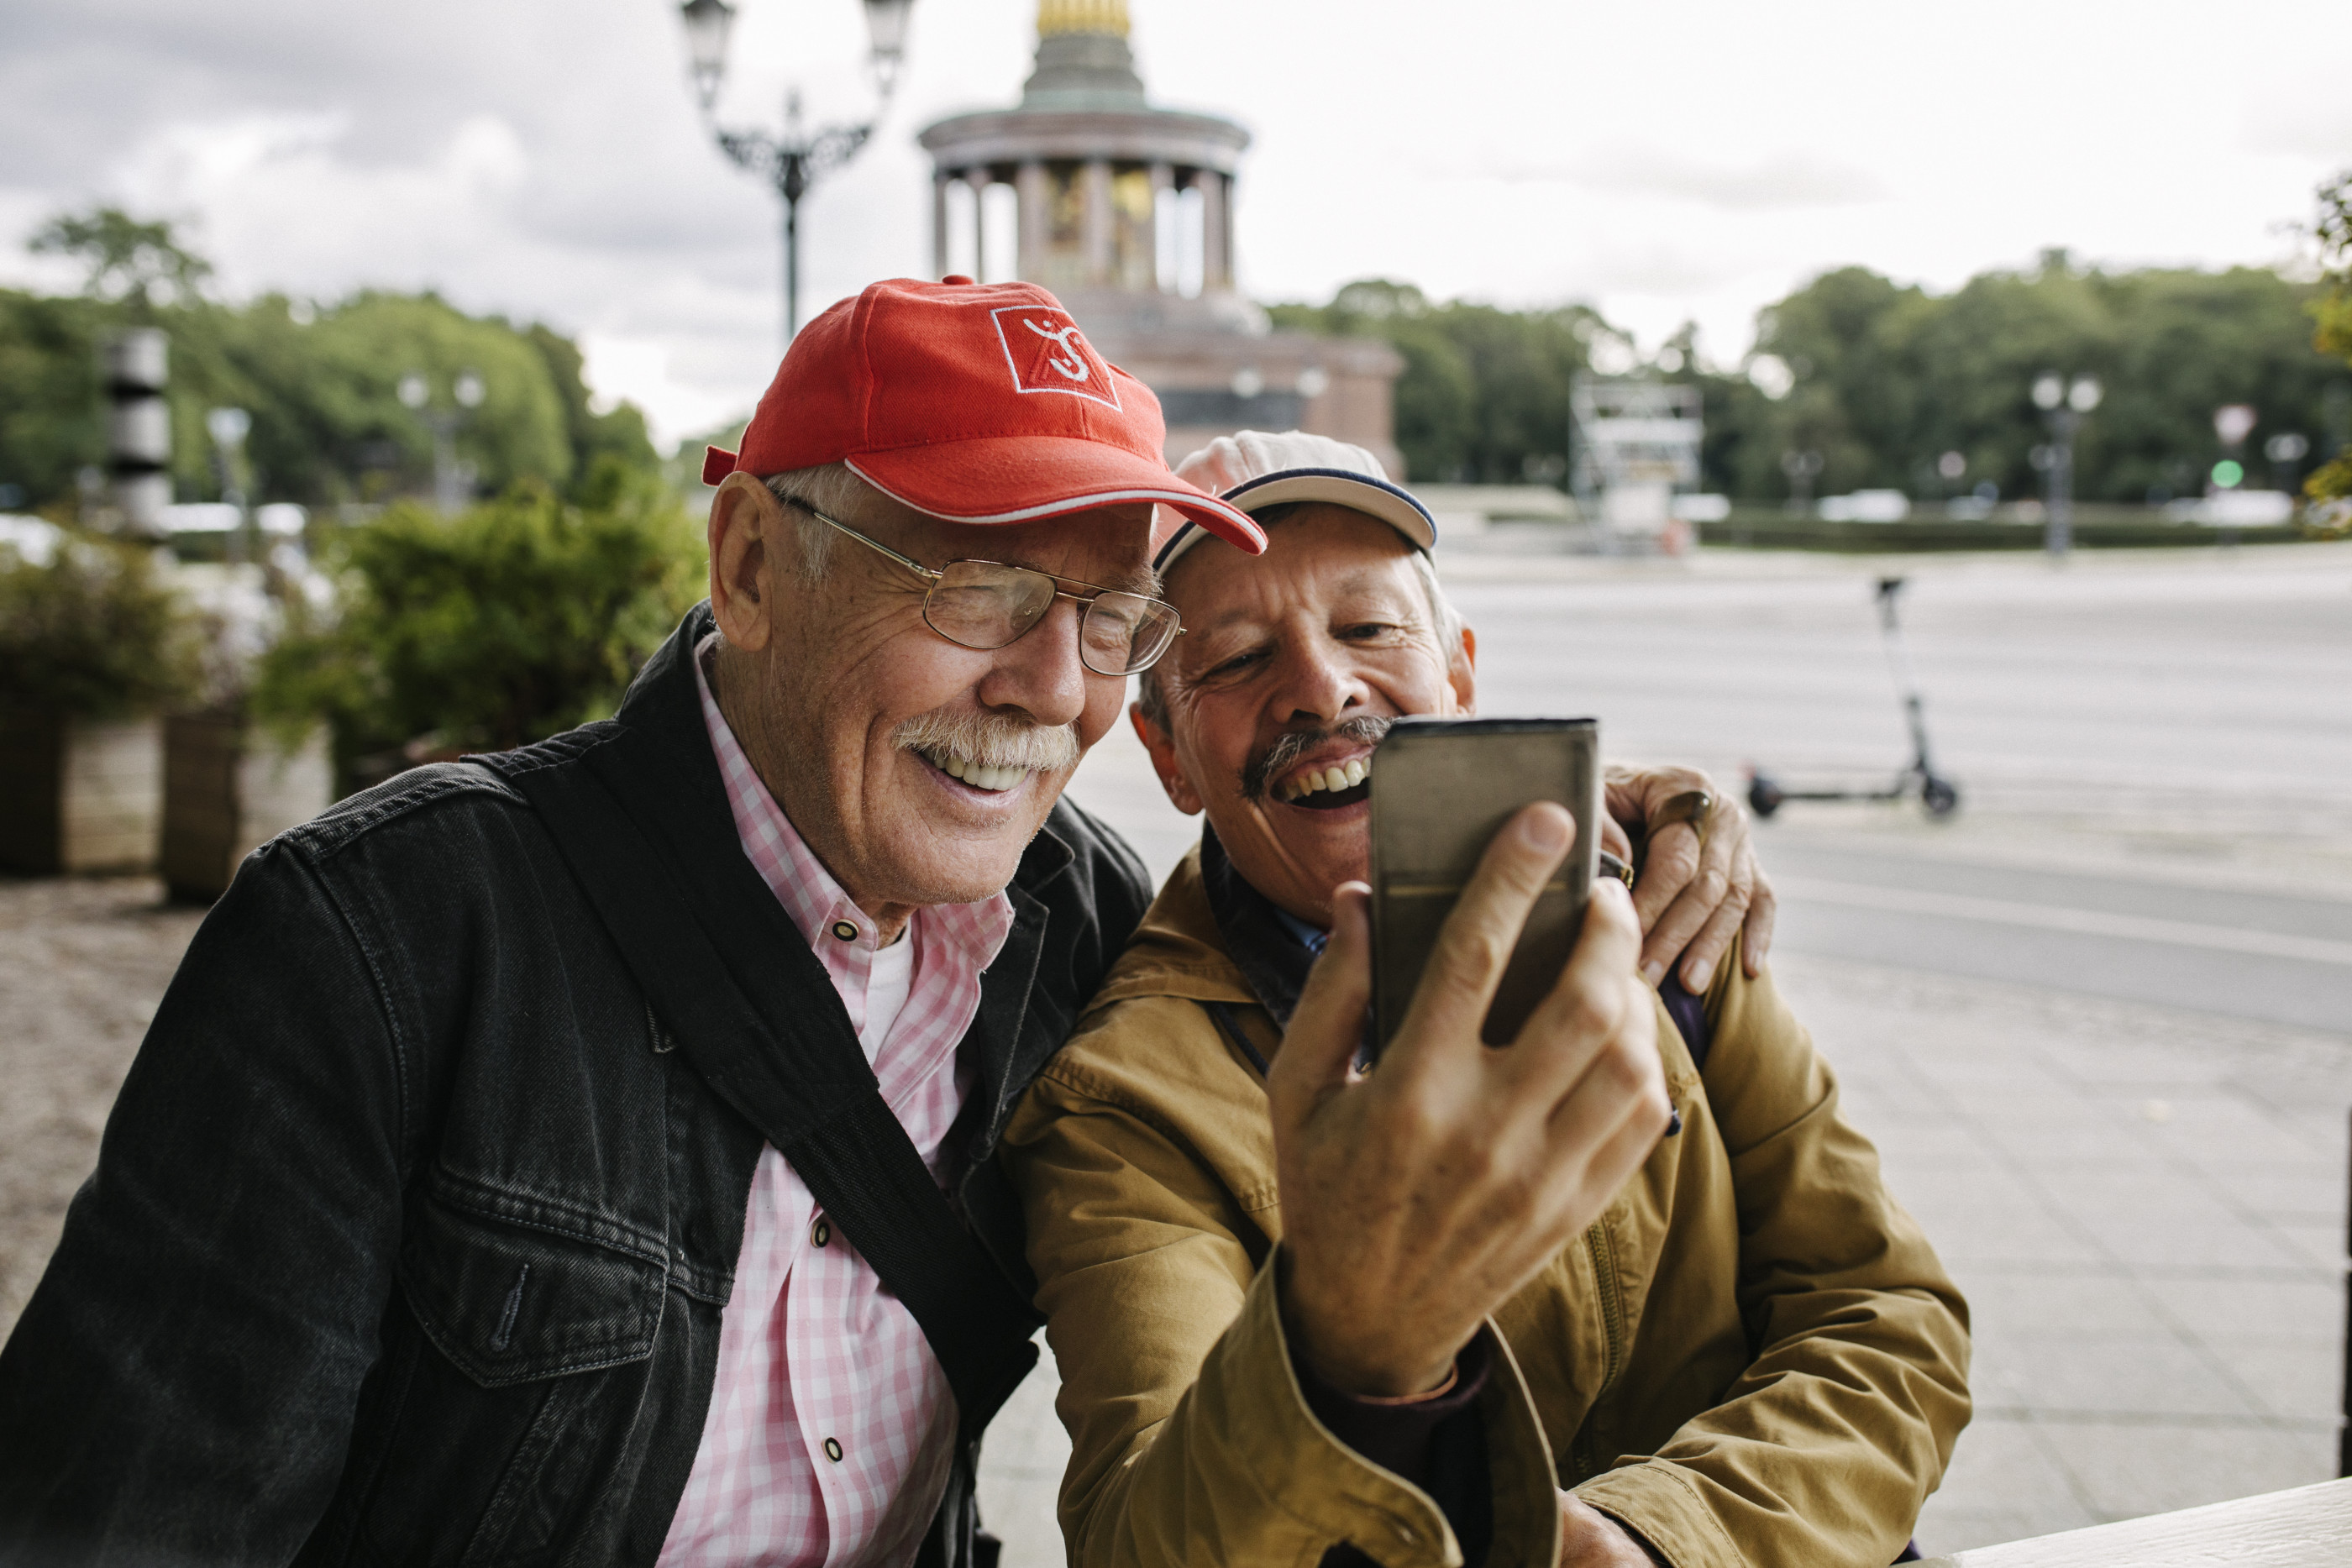 Mature Gay Couple Taking Selfie Together